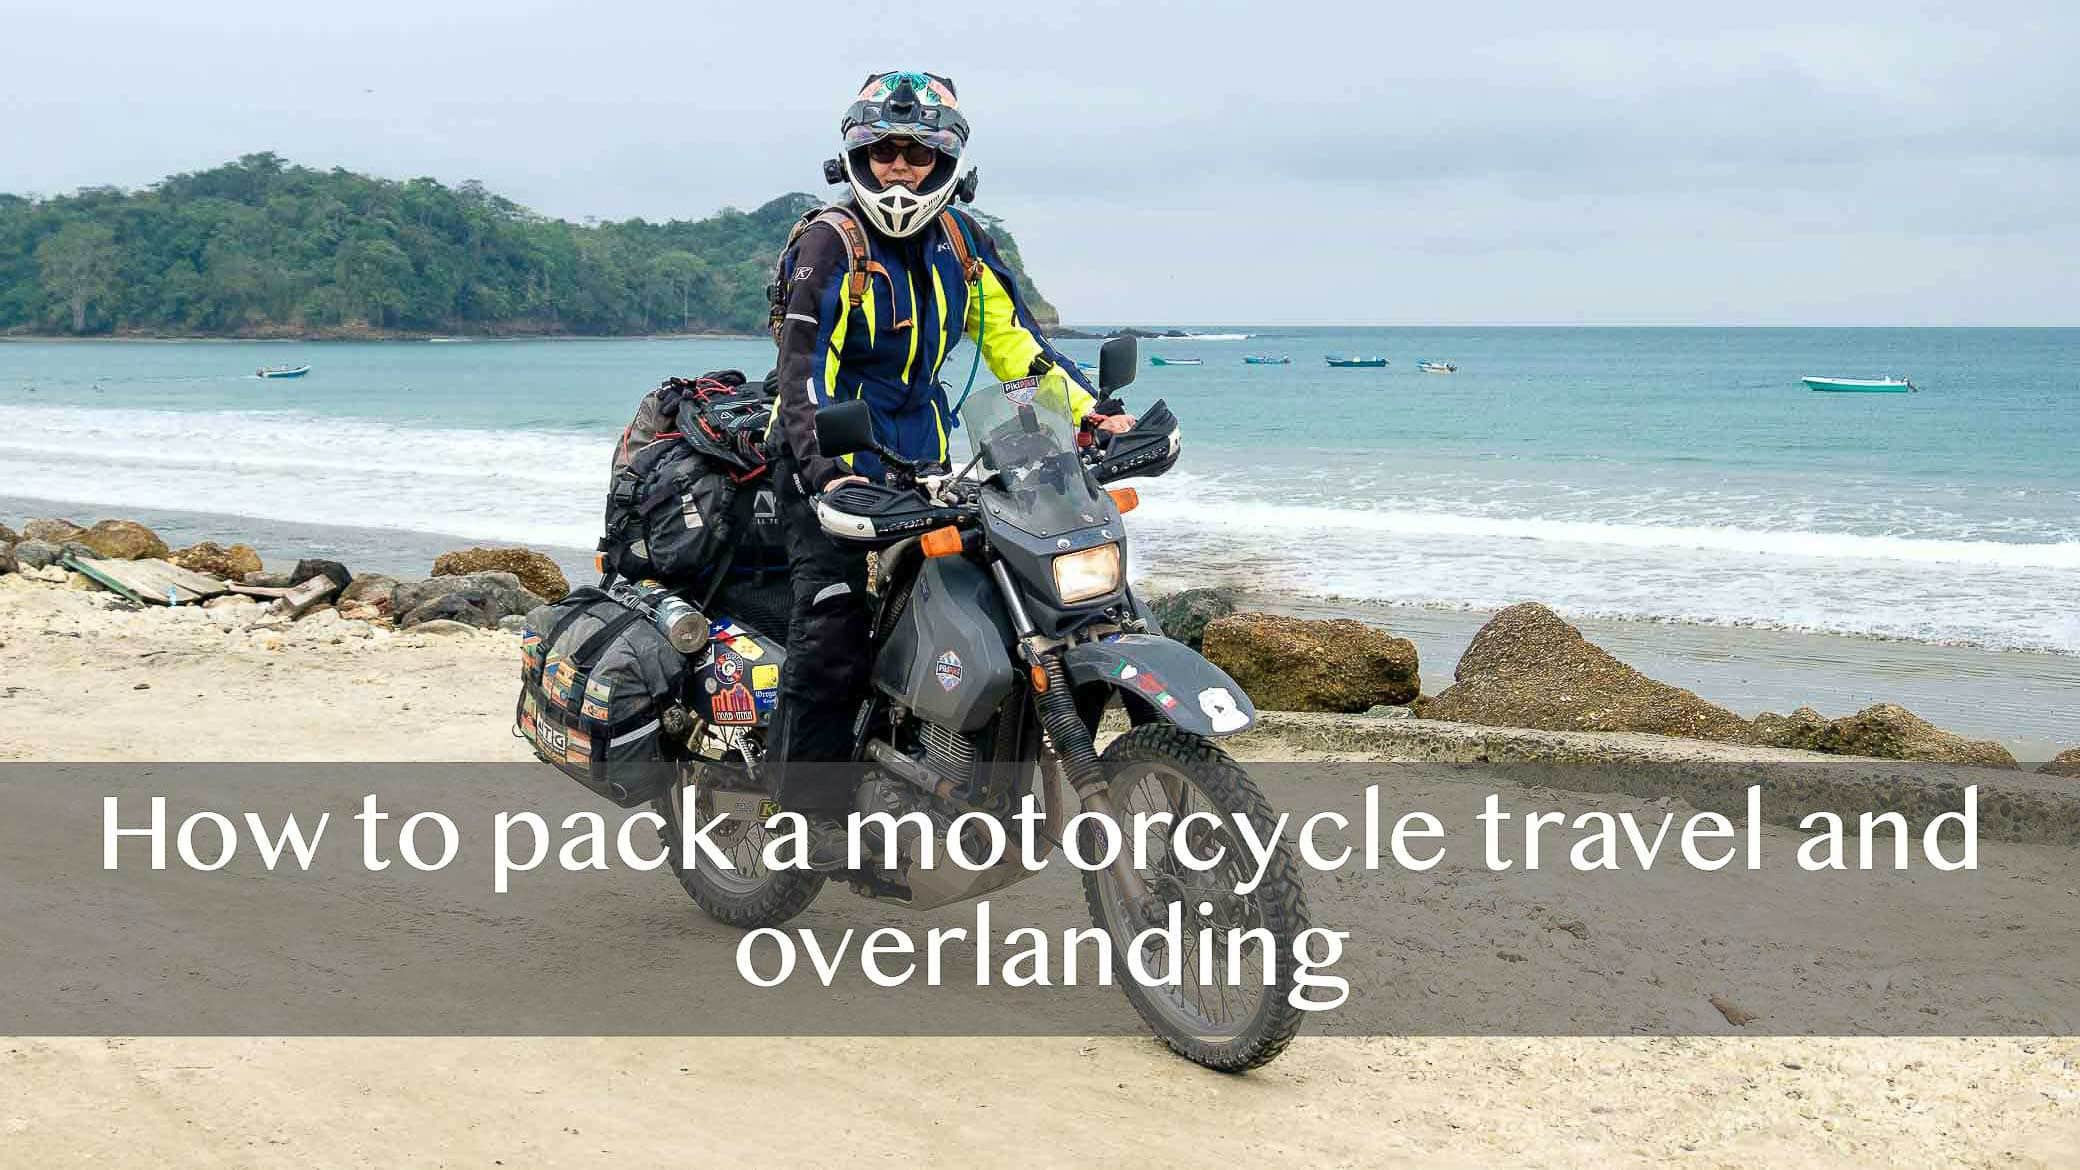 How to pack a motorcycle for long road trips